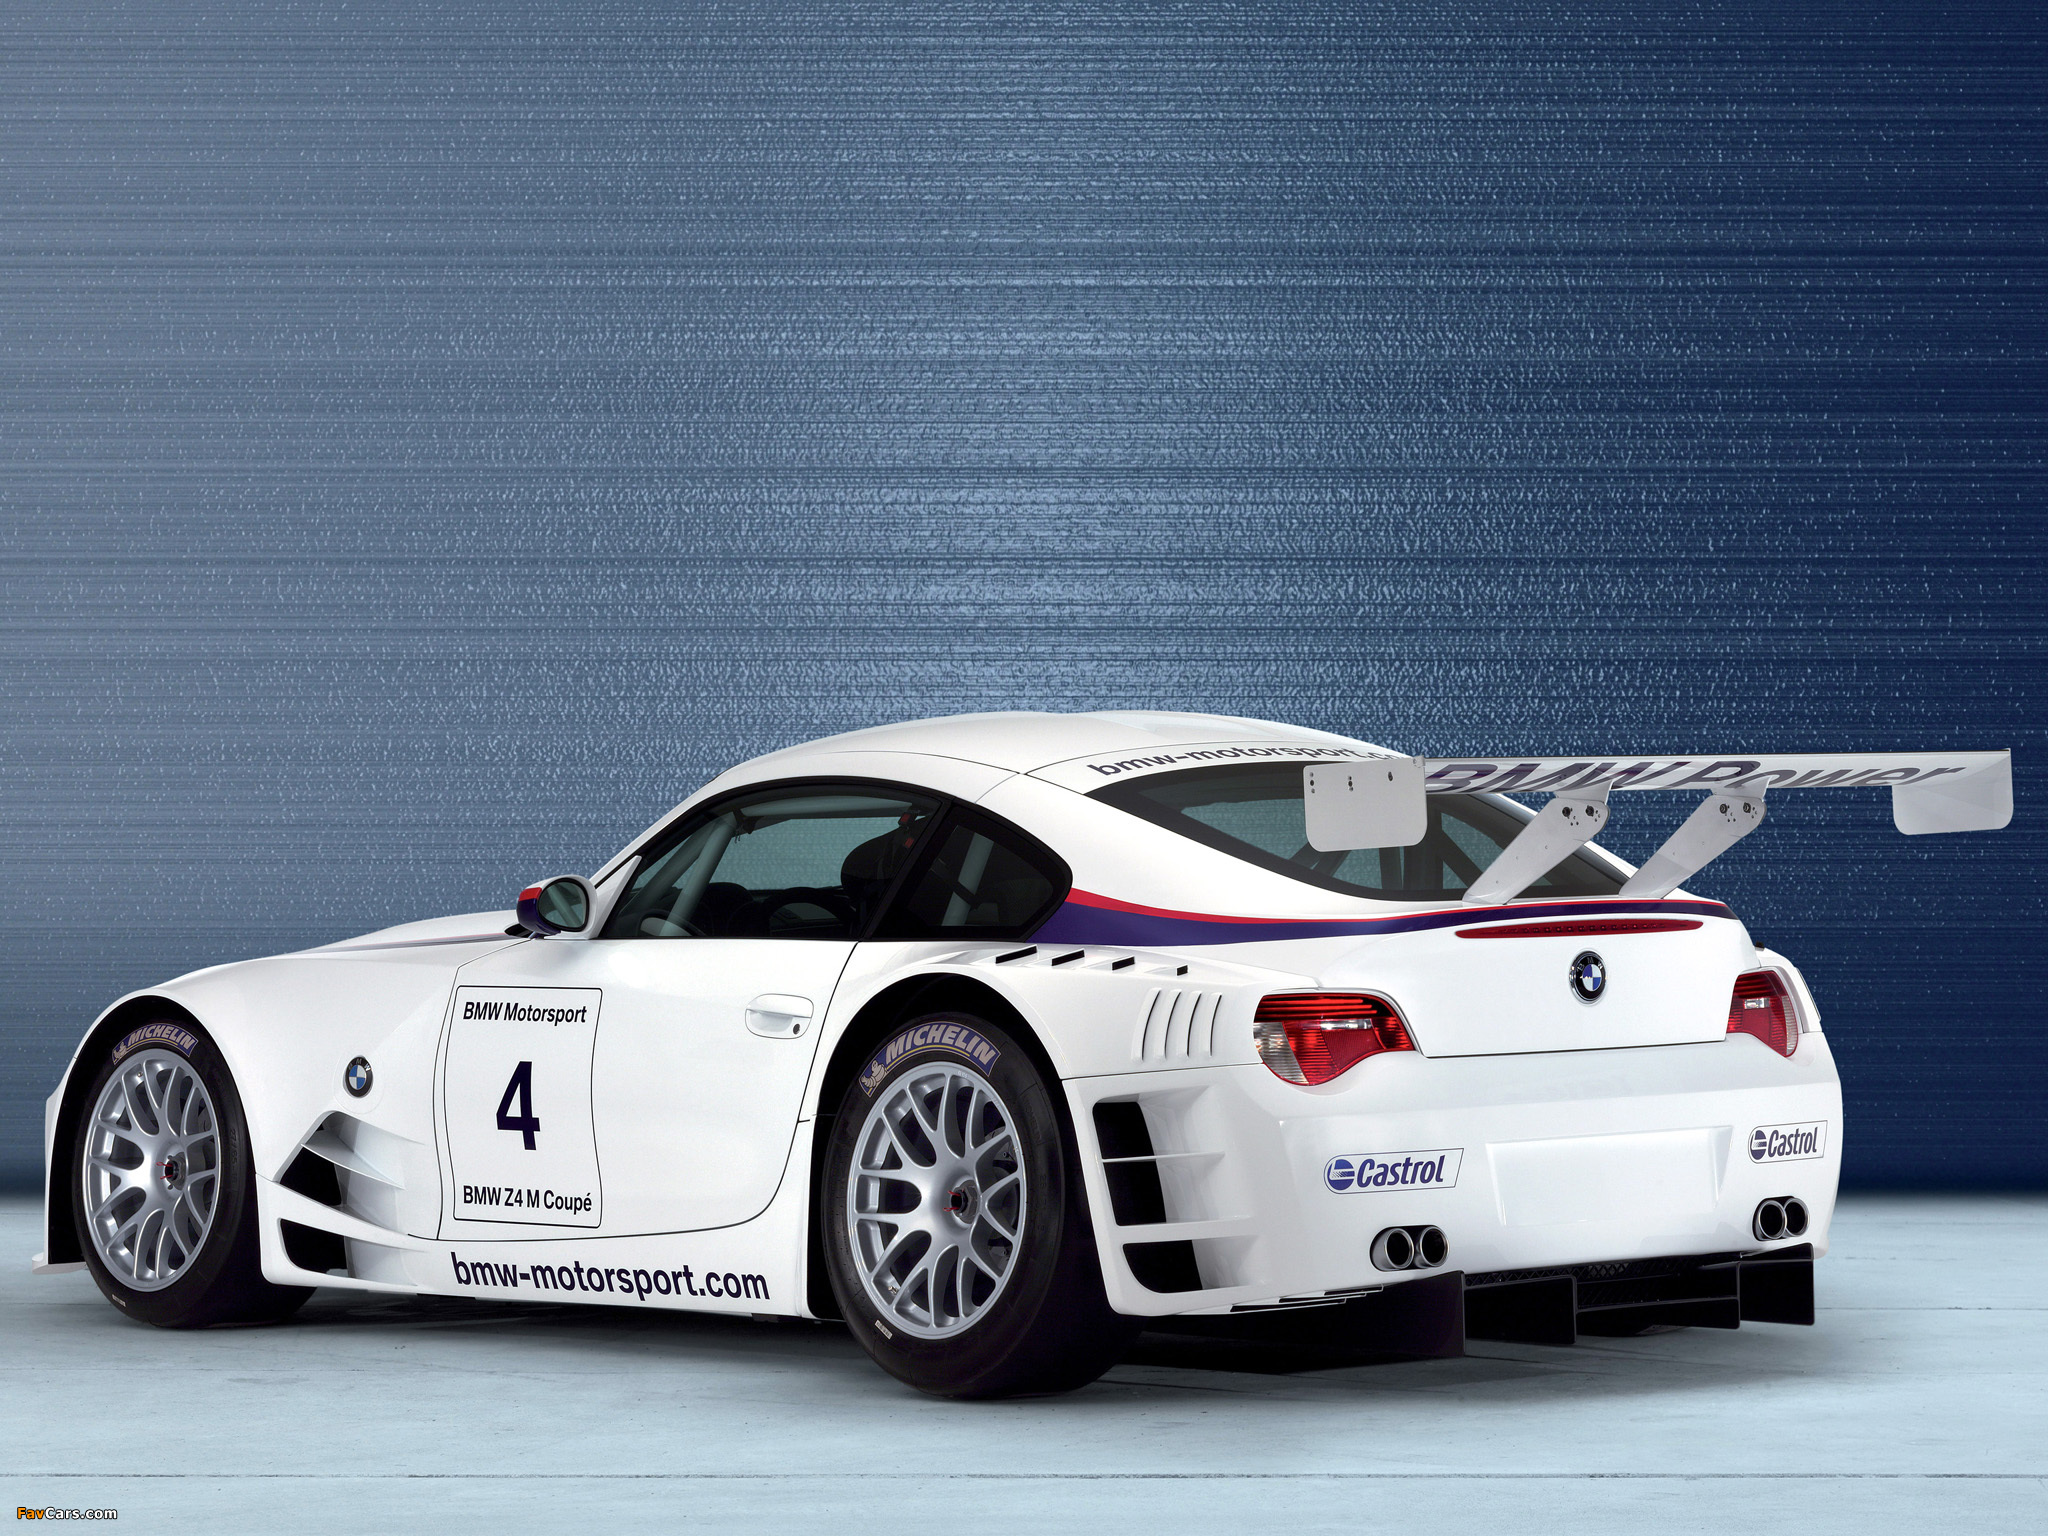 Bmw Z4 M Coupe Race Car E85 2006 09 Images 2048x1536